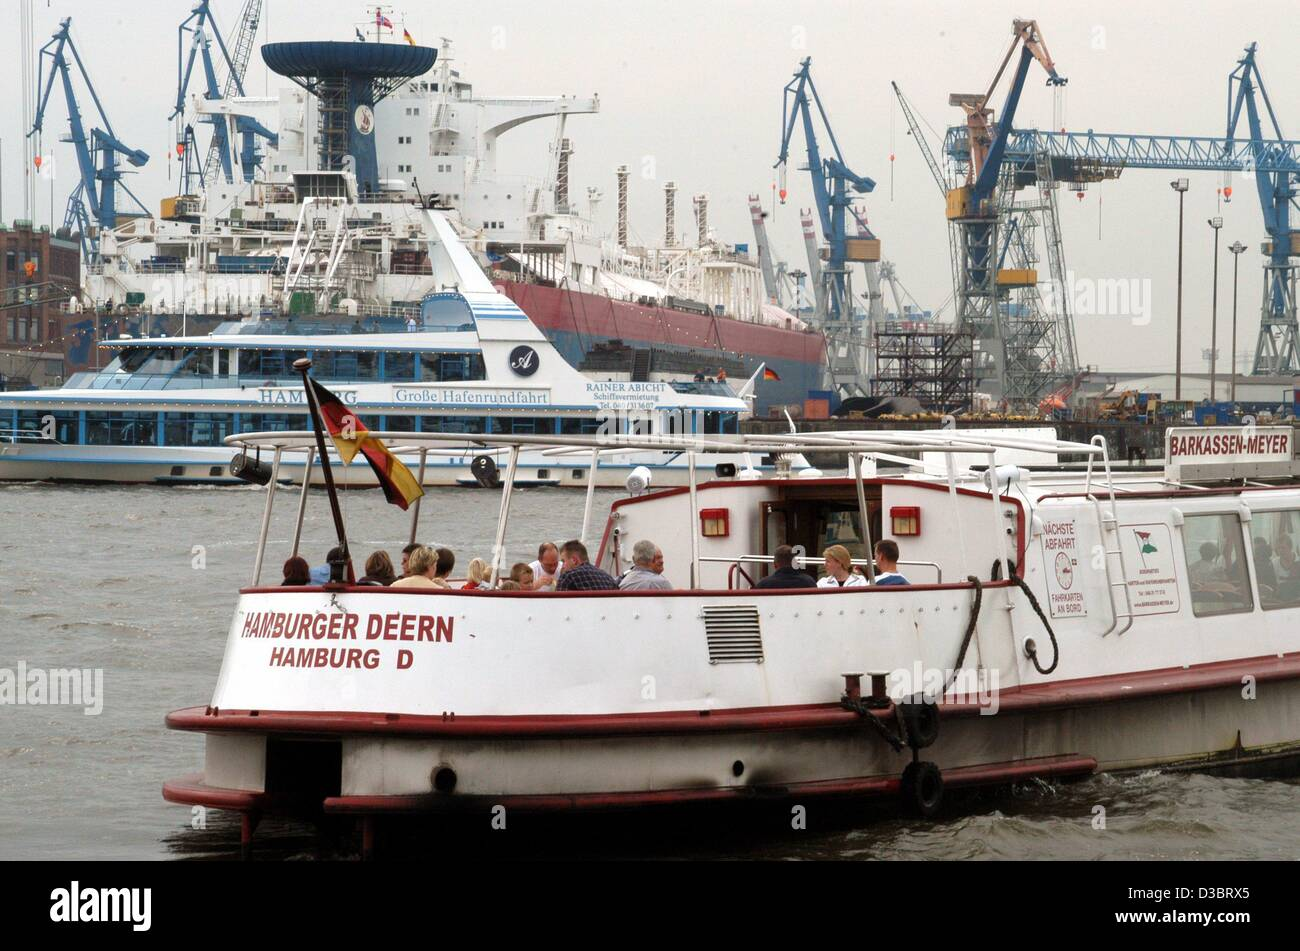 (dpa) - The excursion boat 'Hamburger Deern' departs for a harbour cruise around the port of Hamburg, 8 - Stock Image